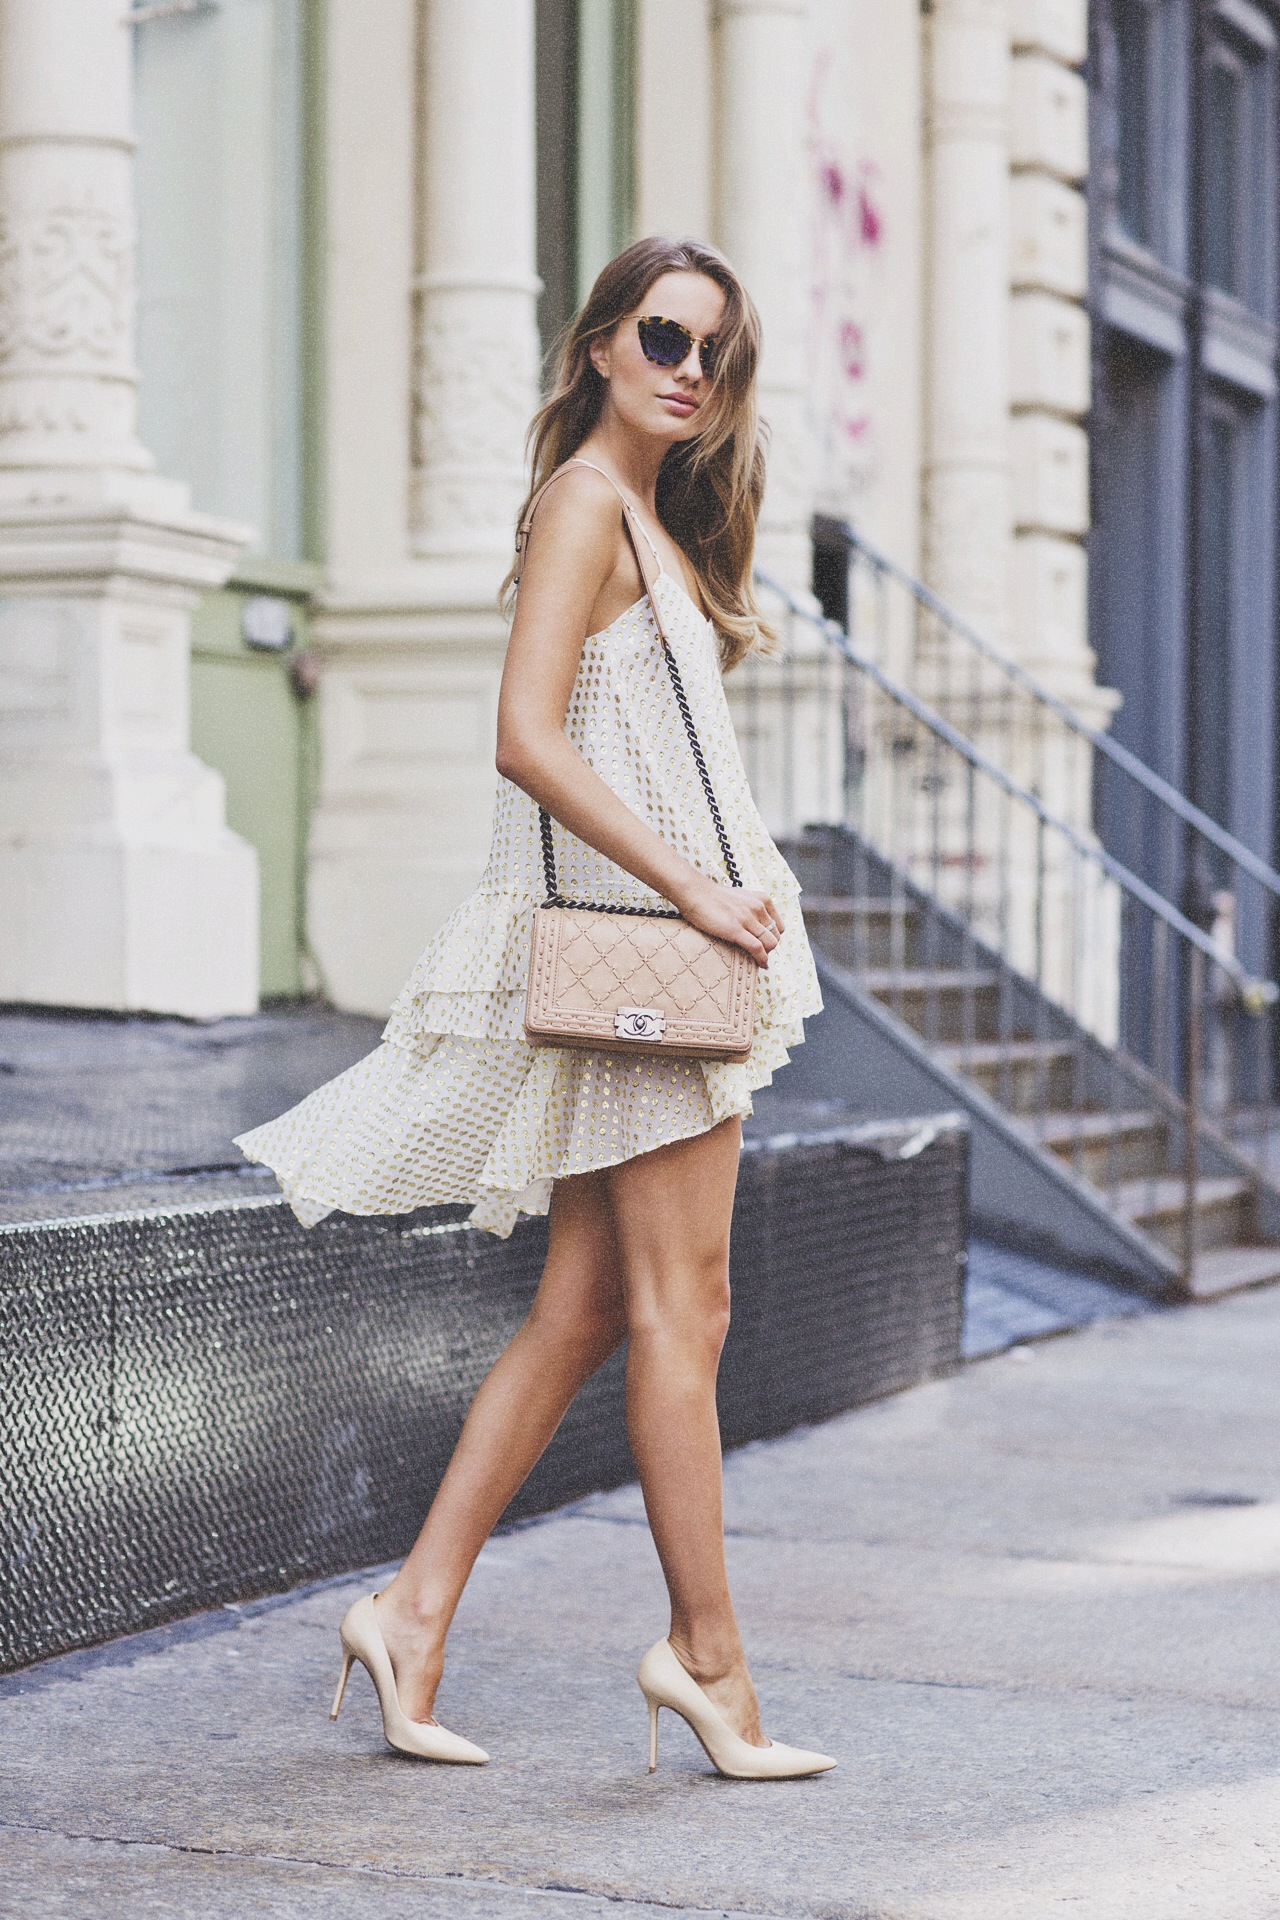 fashion blog Dogs and Dresses